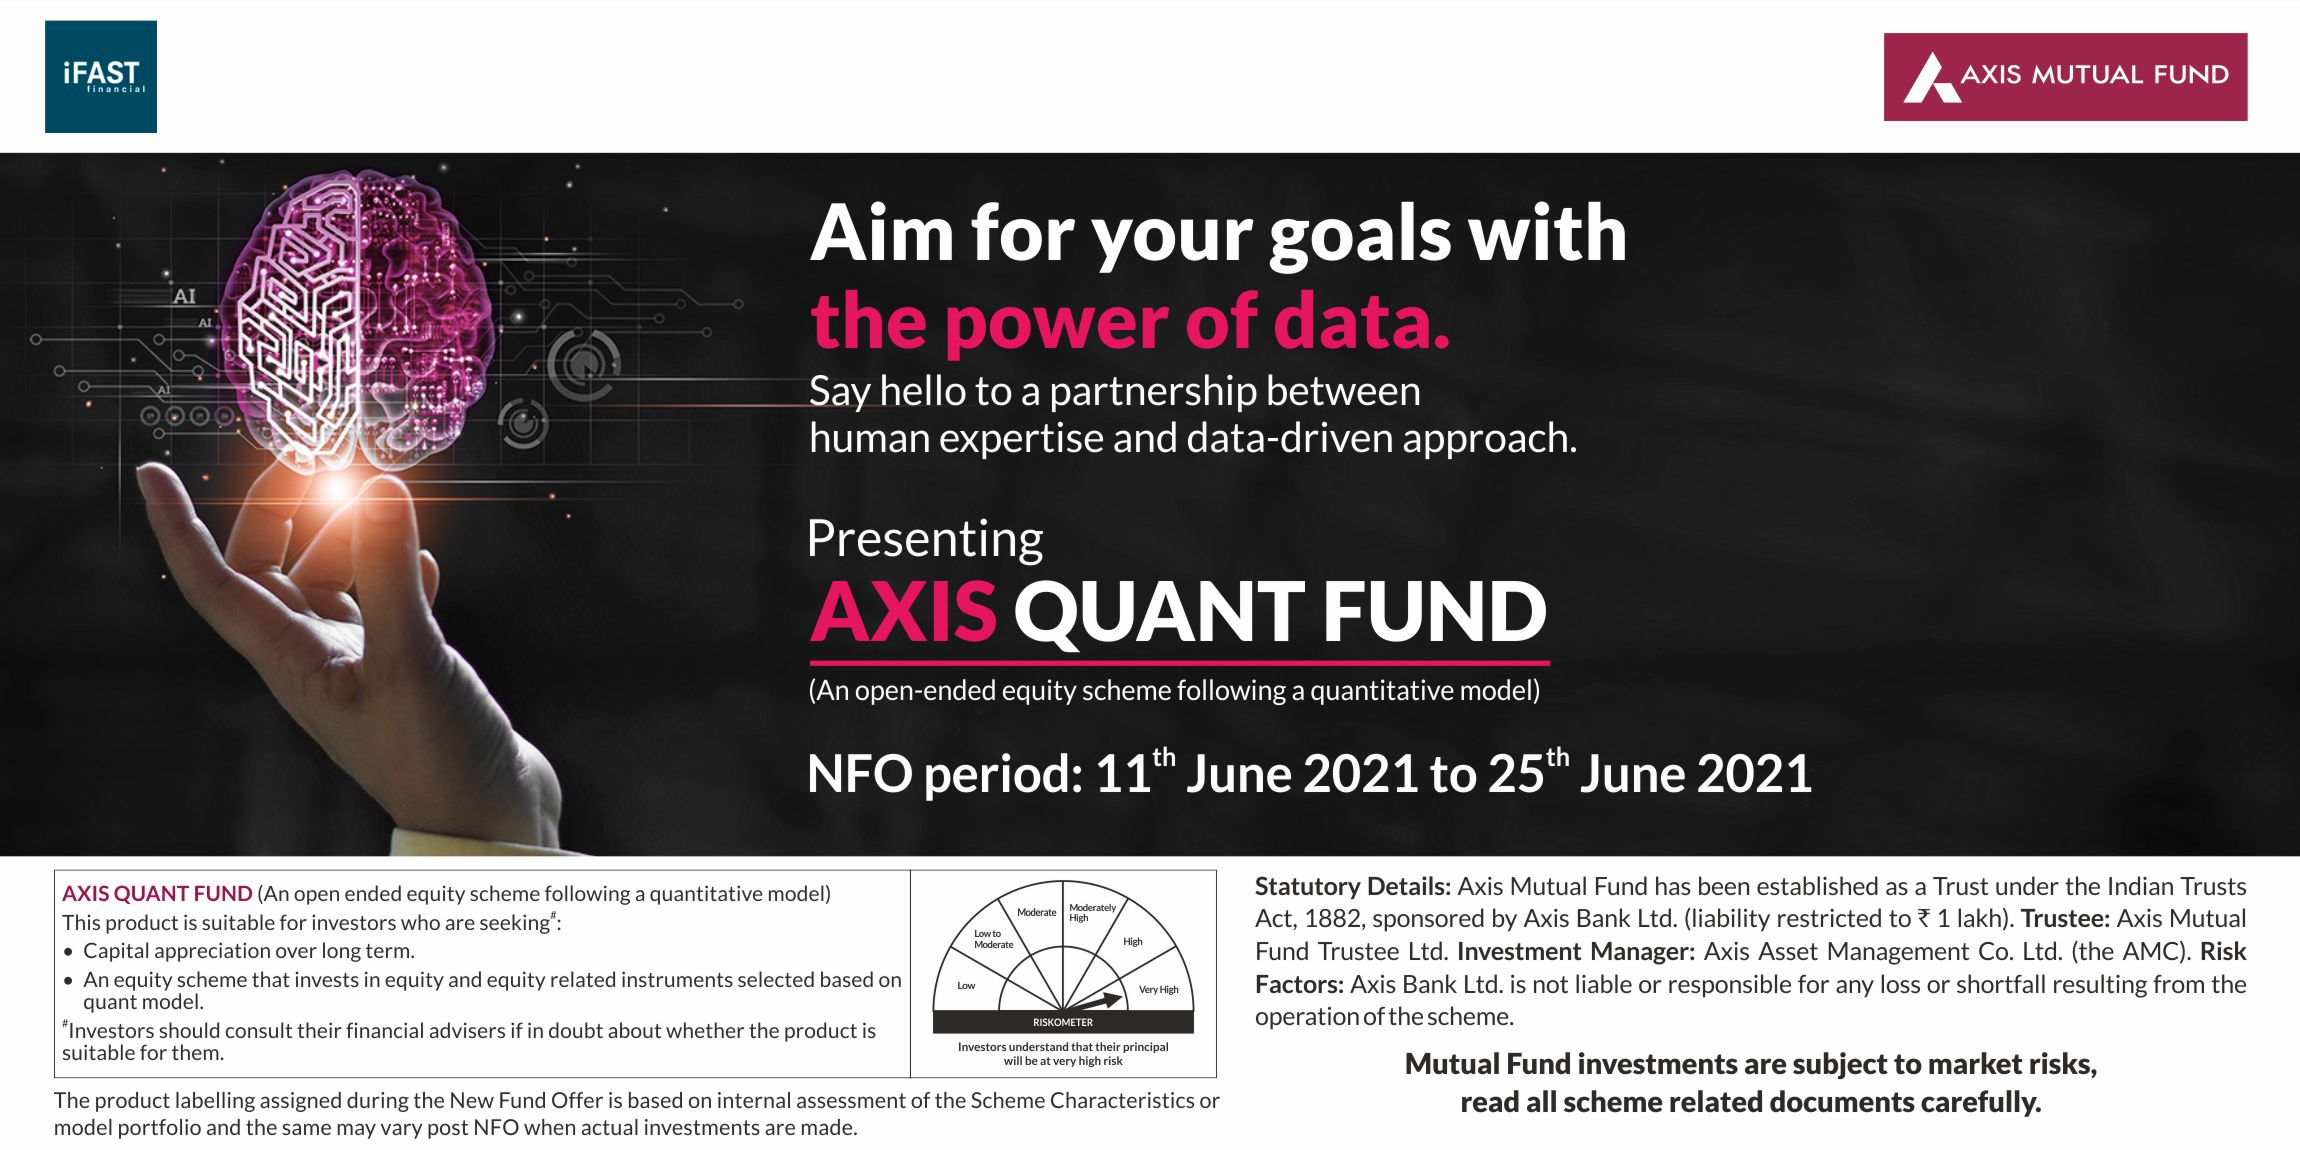 AXIS QUANT FUND